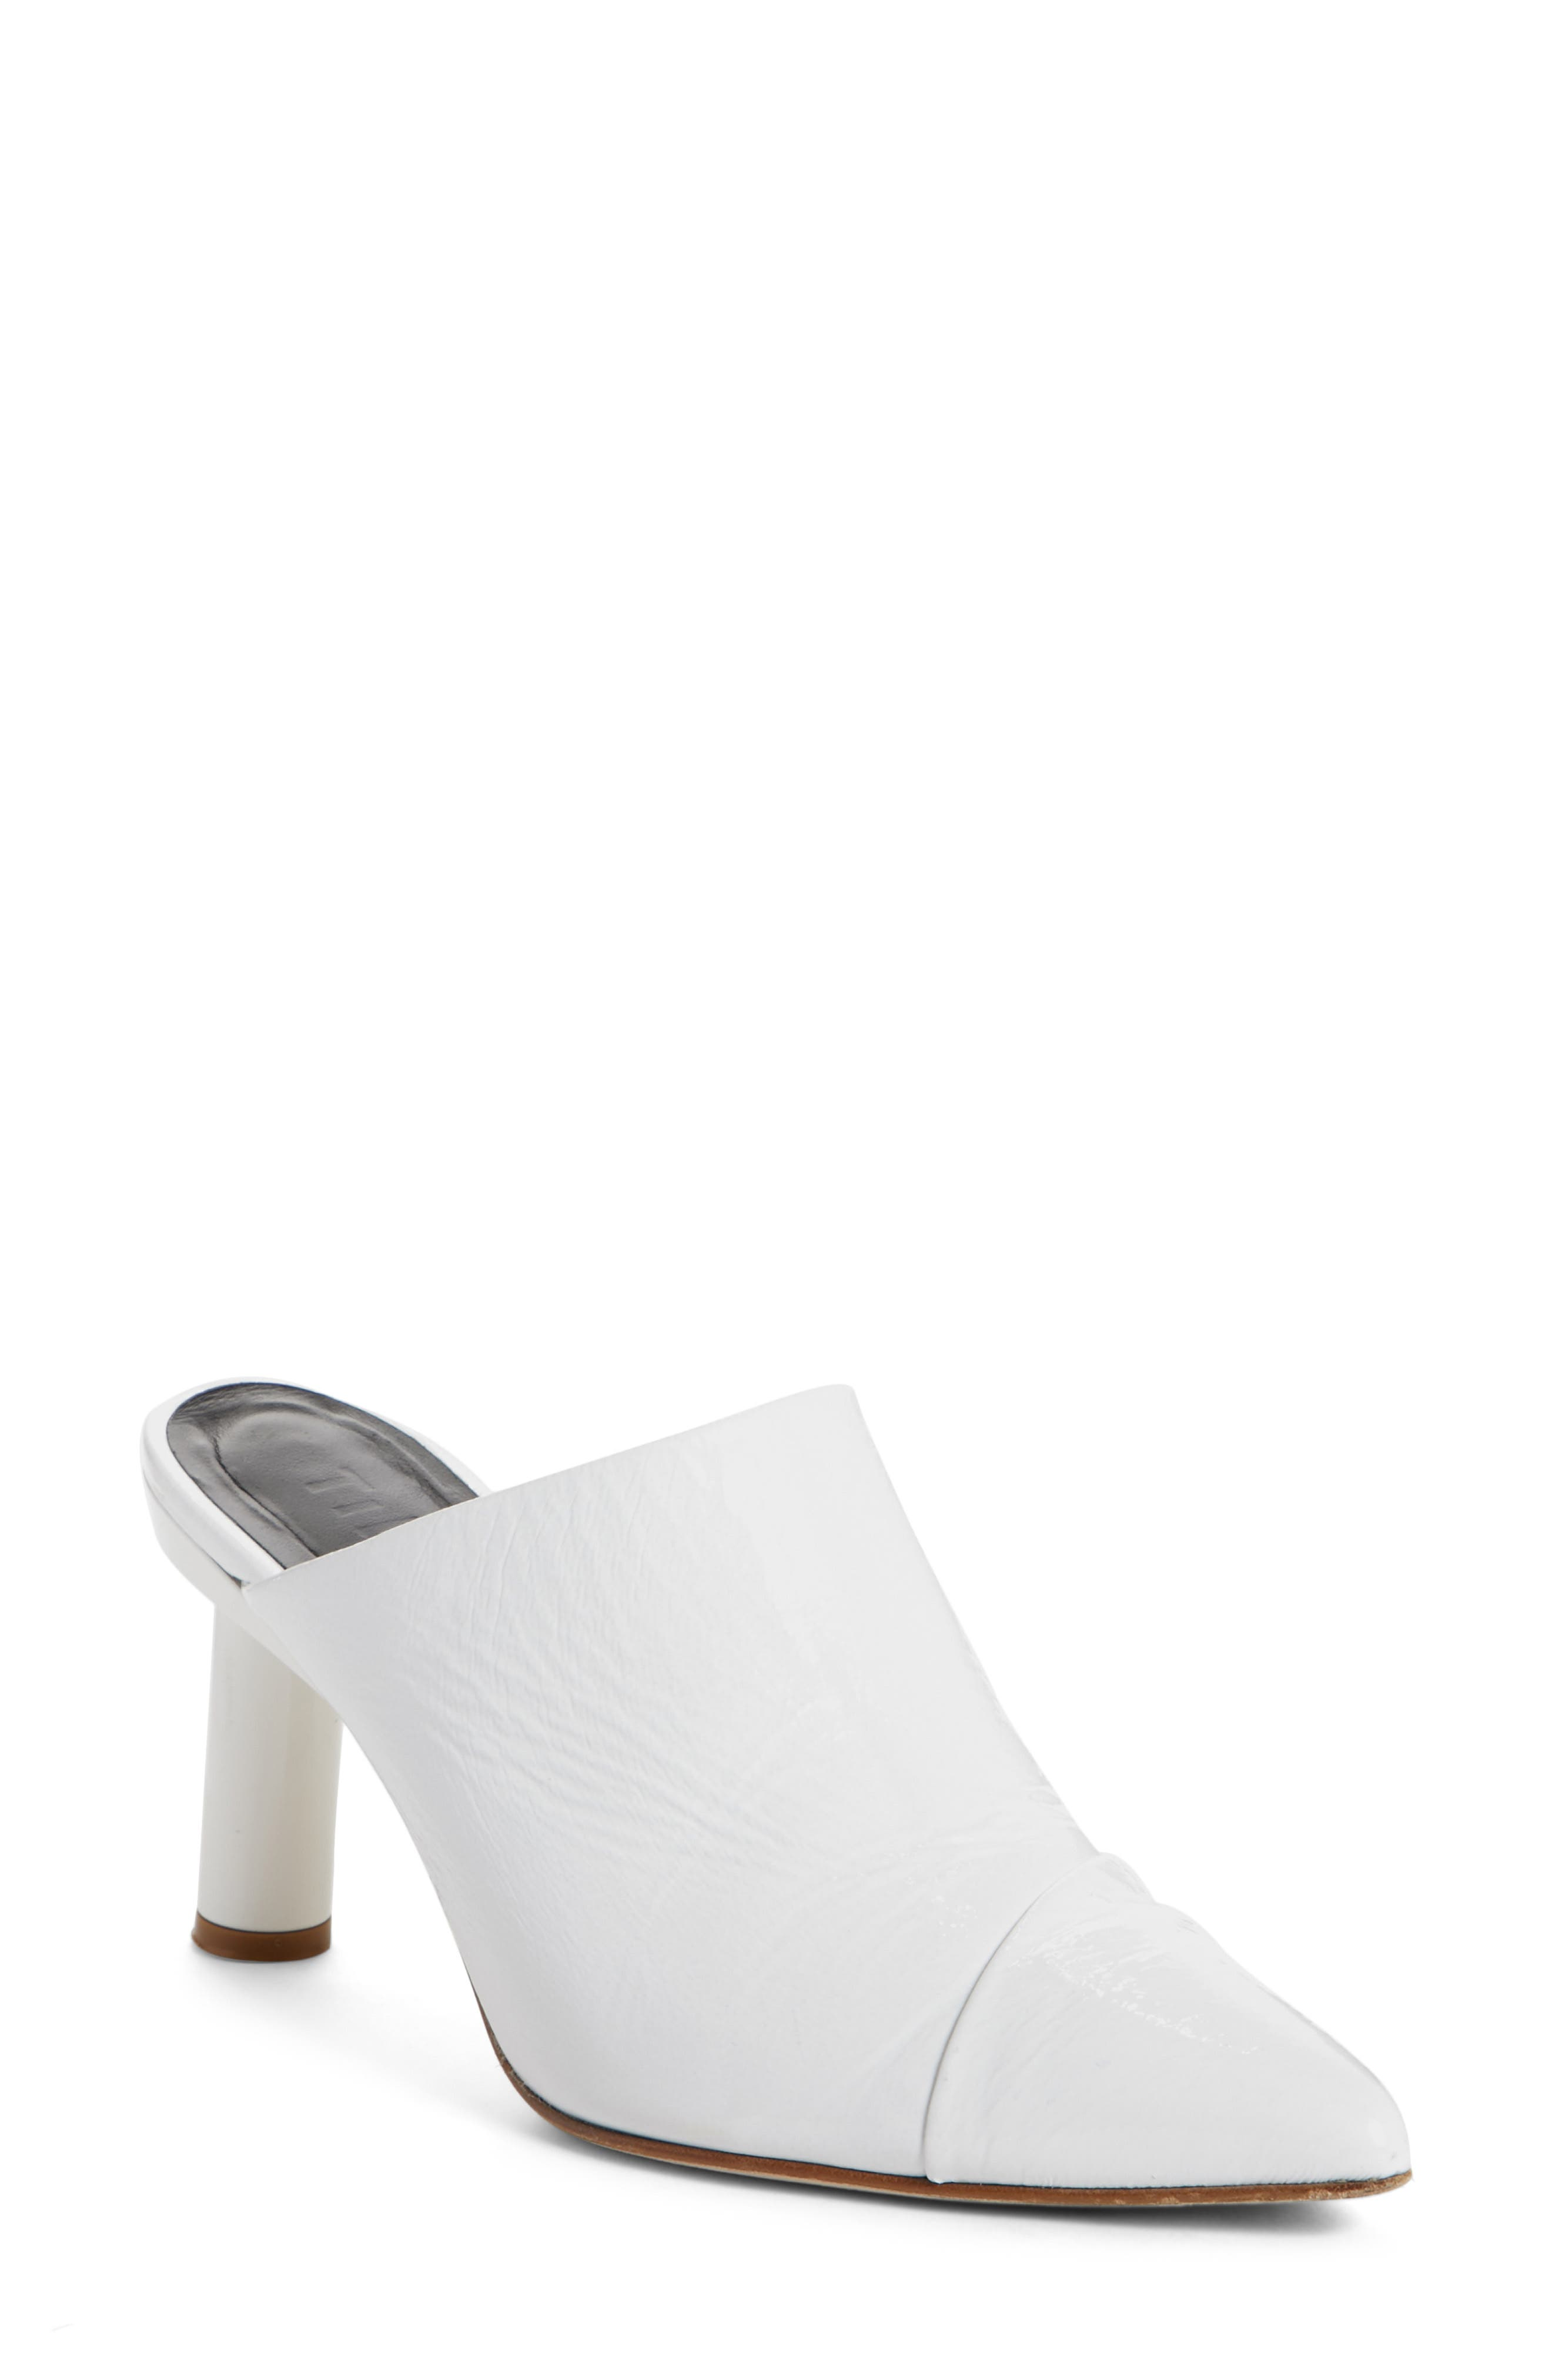 Tibi Liam Pointy Toe Mule (Women)